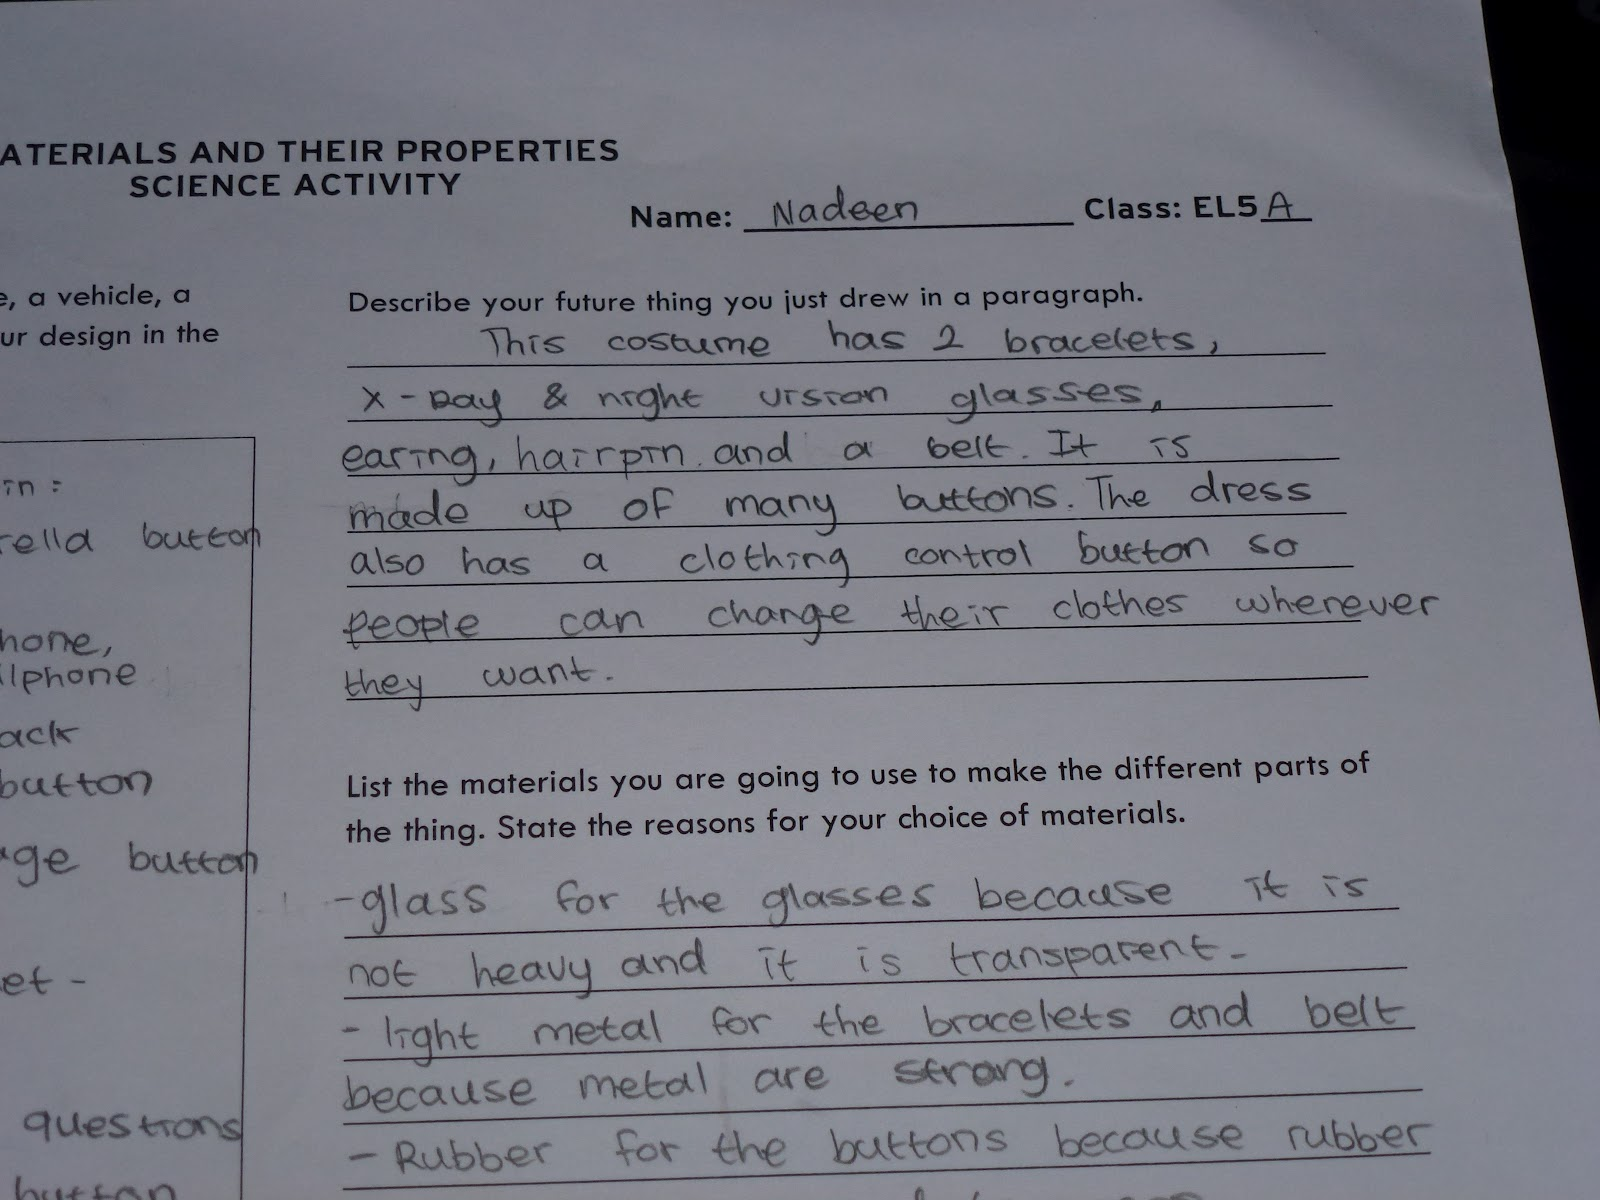 Nadeen S Science Area Materials And Their Properties Science Worksheet